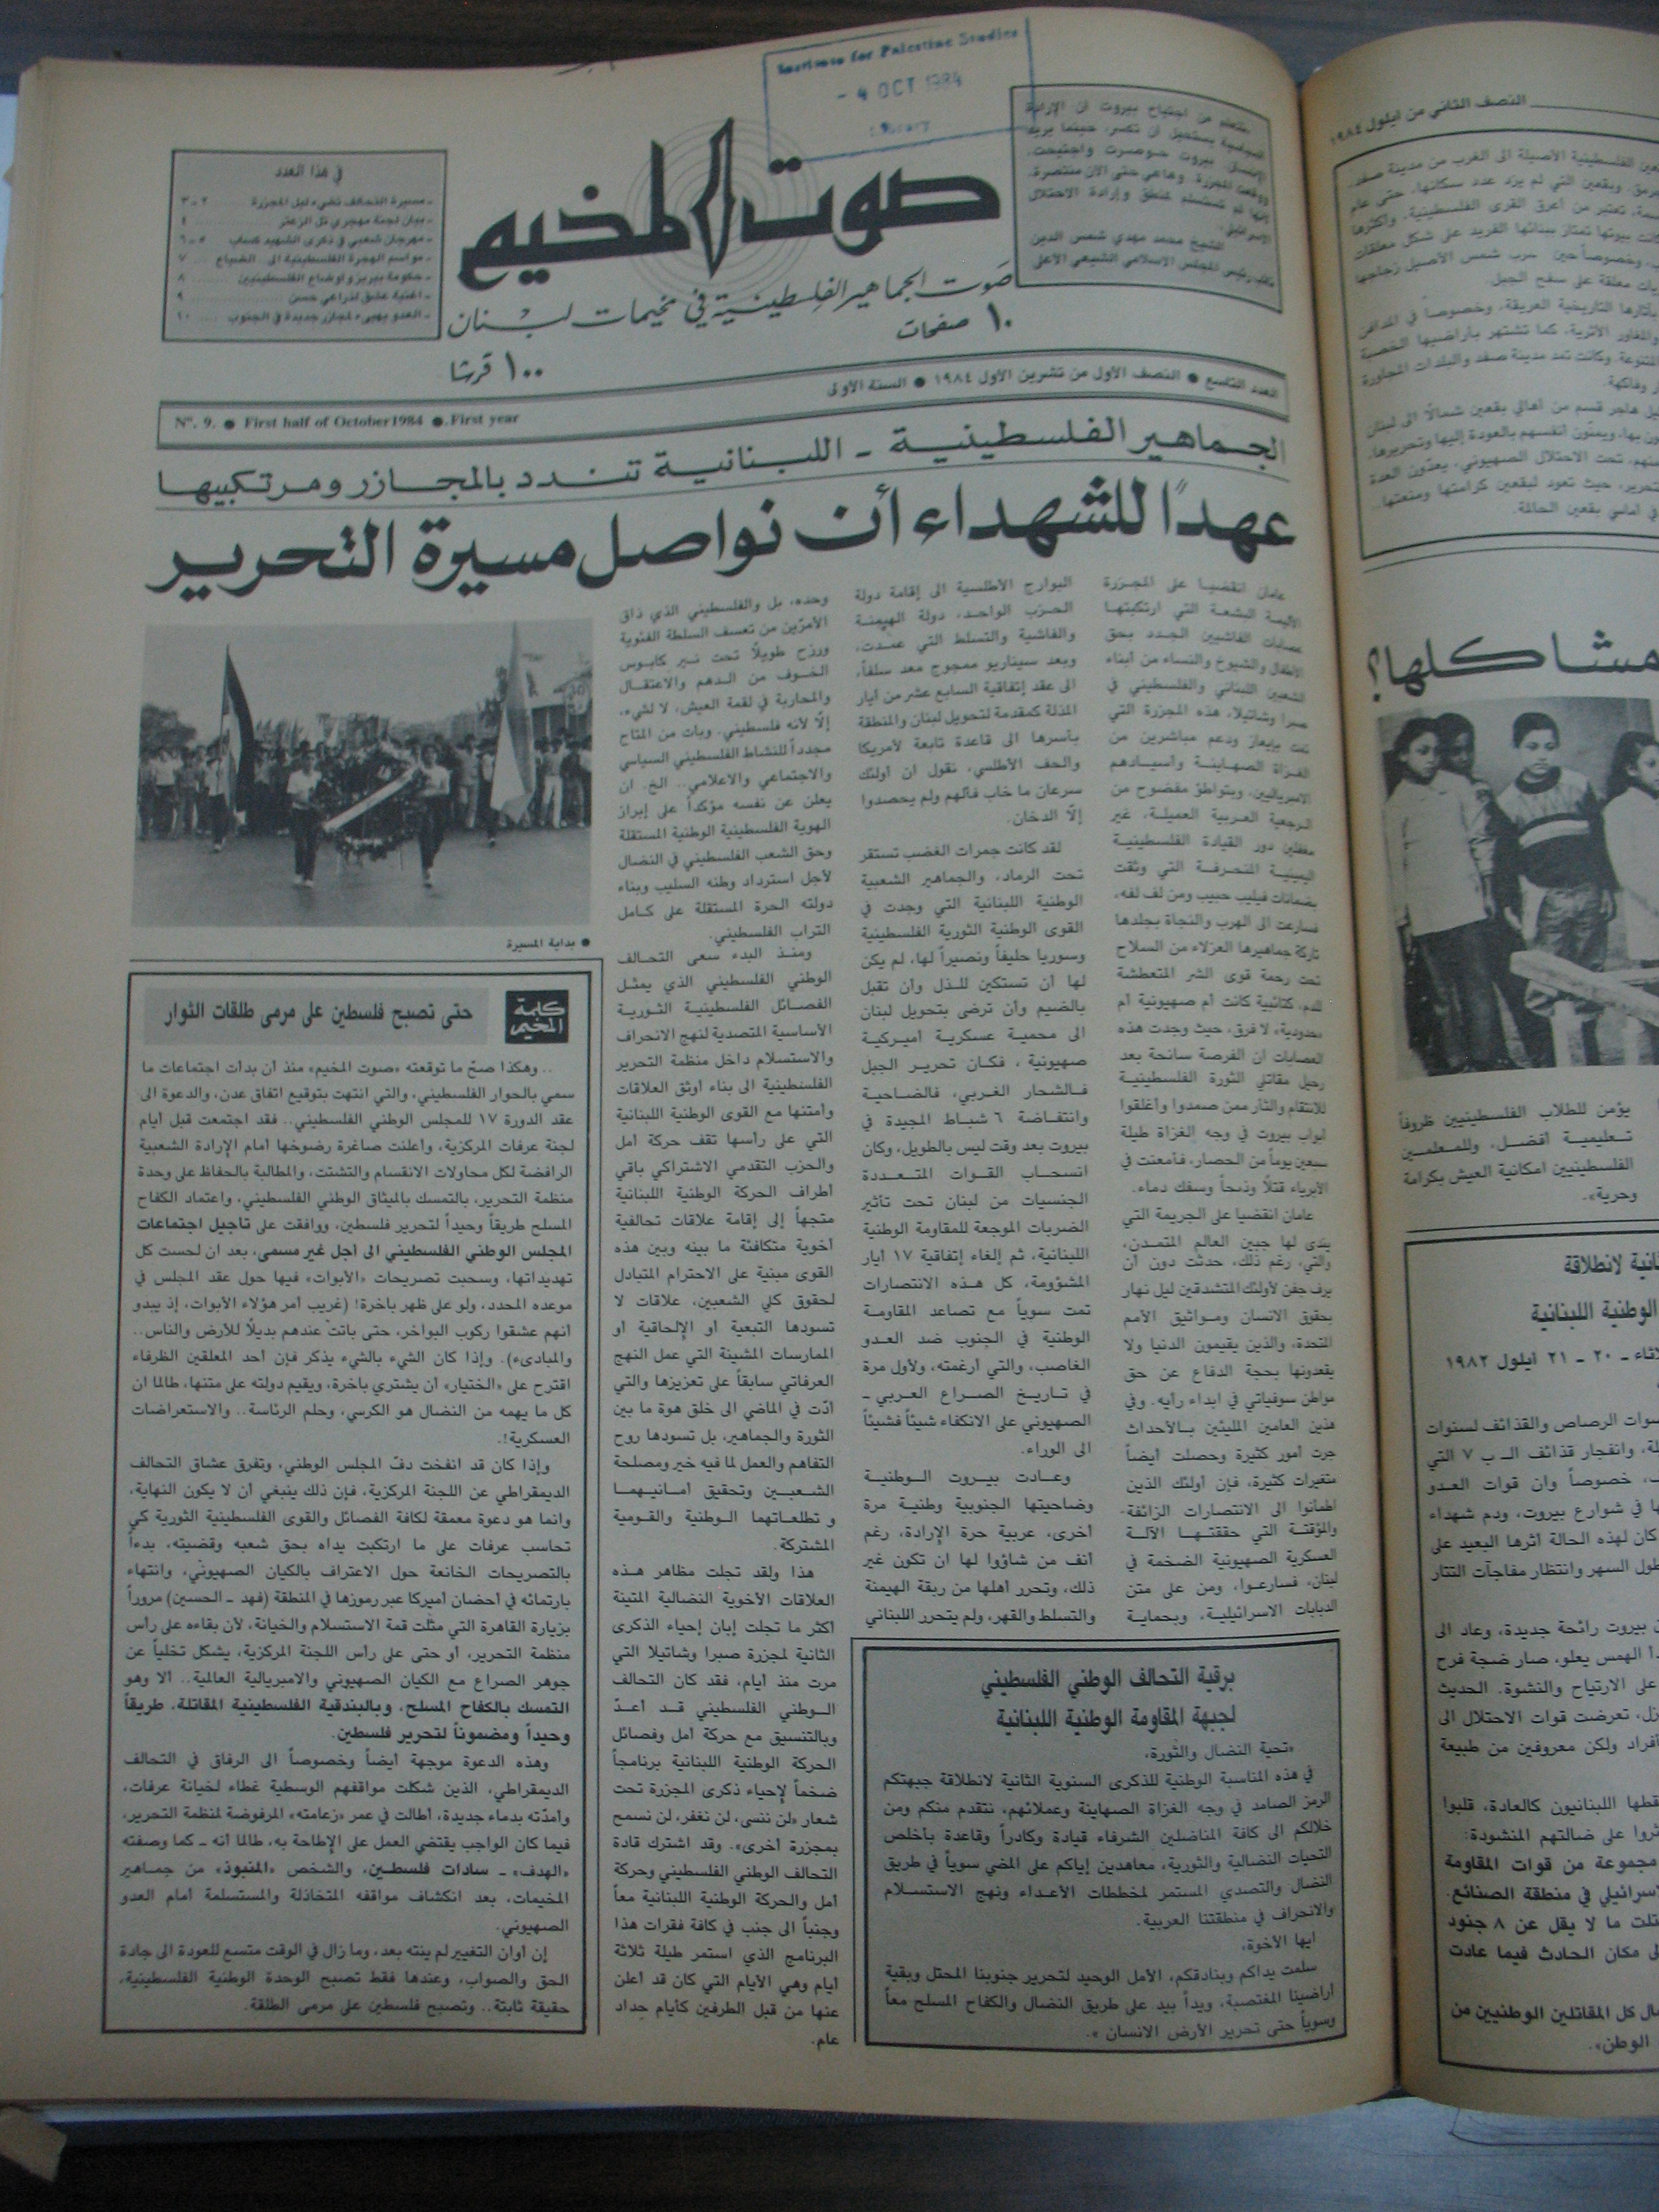 Front page of a clandestine Palestinian newspaper published in 1980s Lebanon